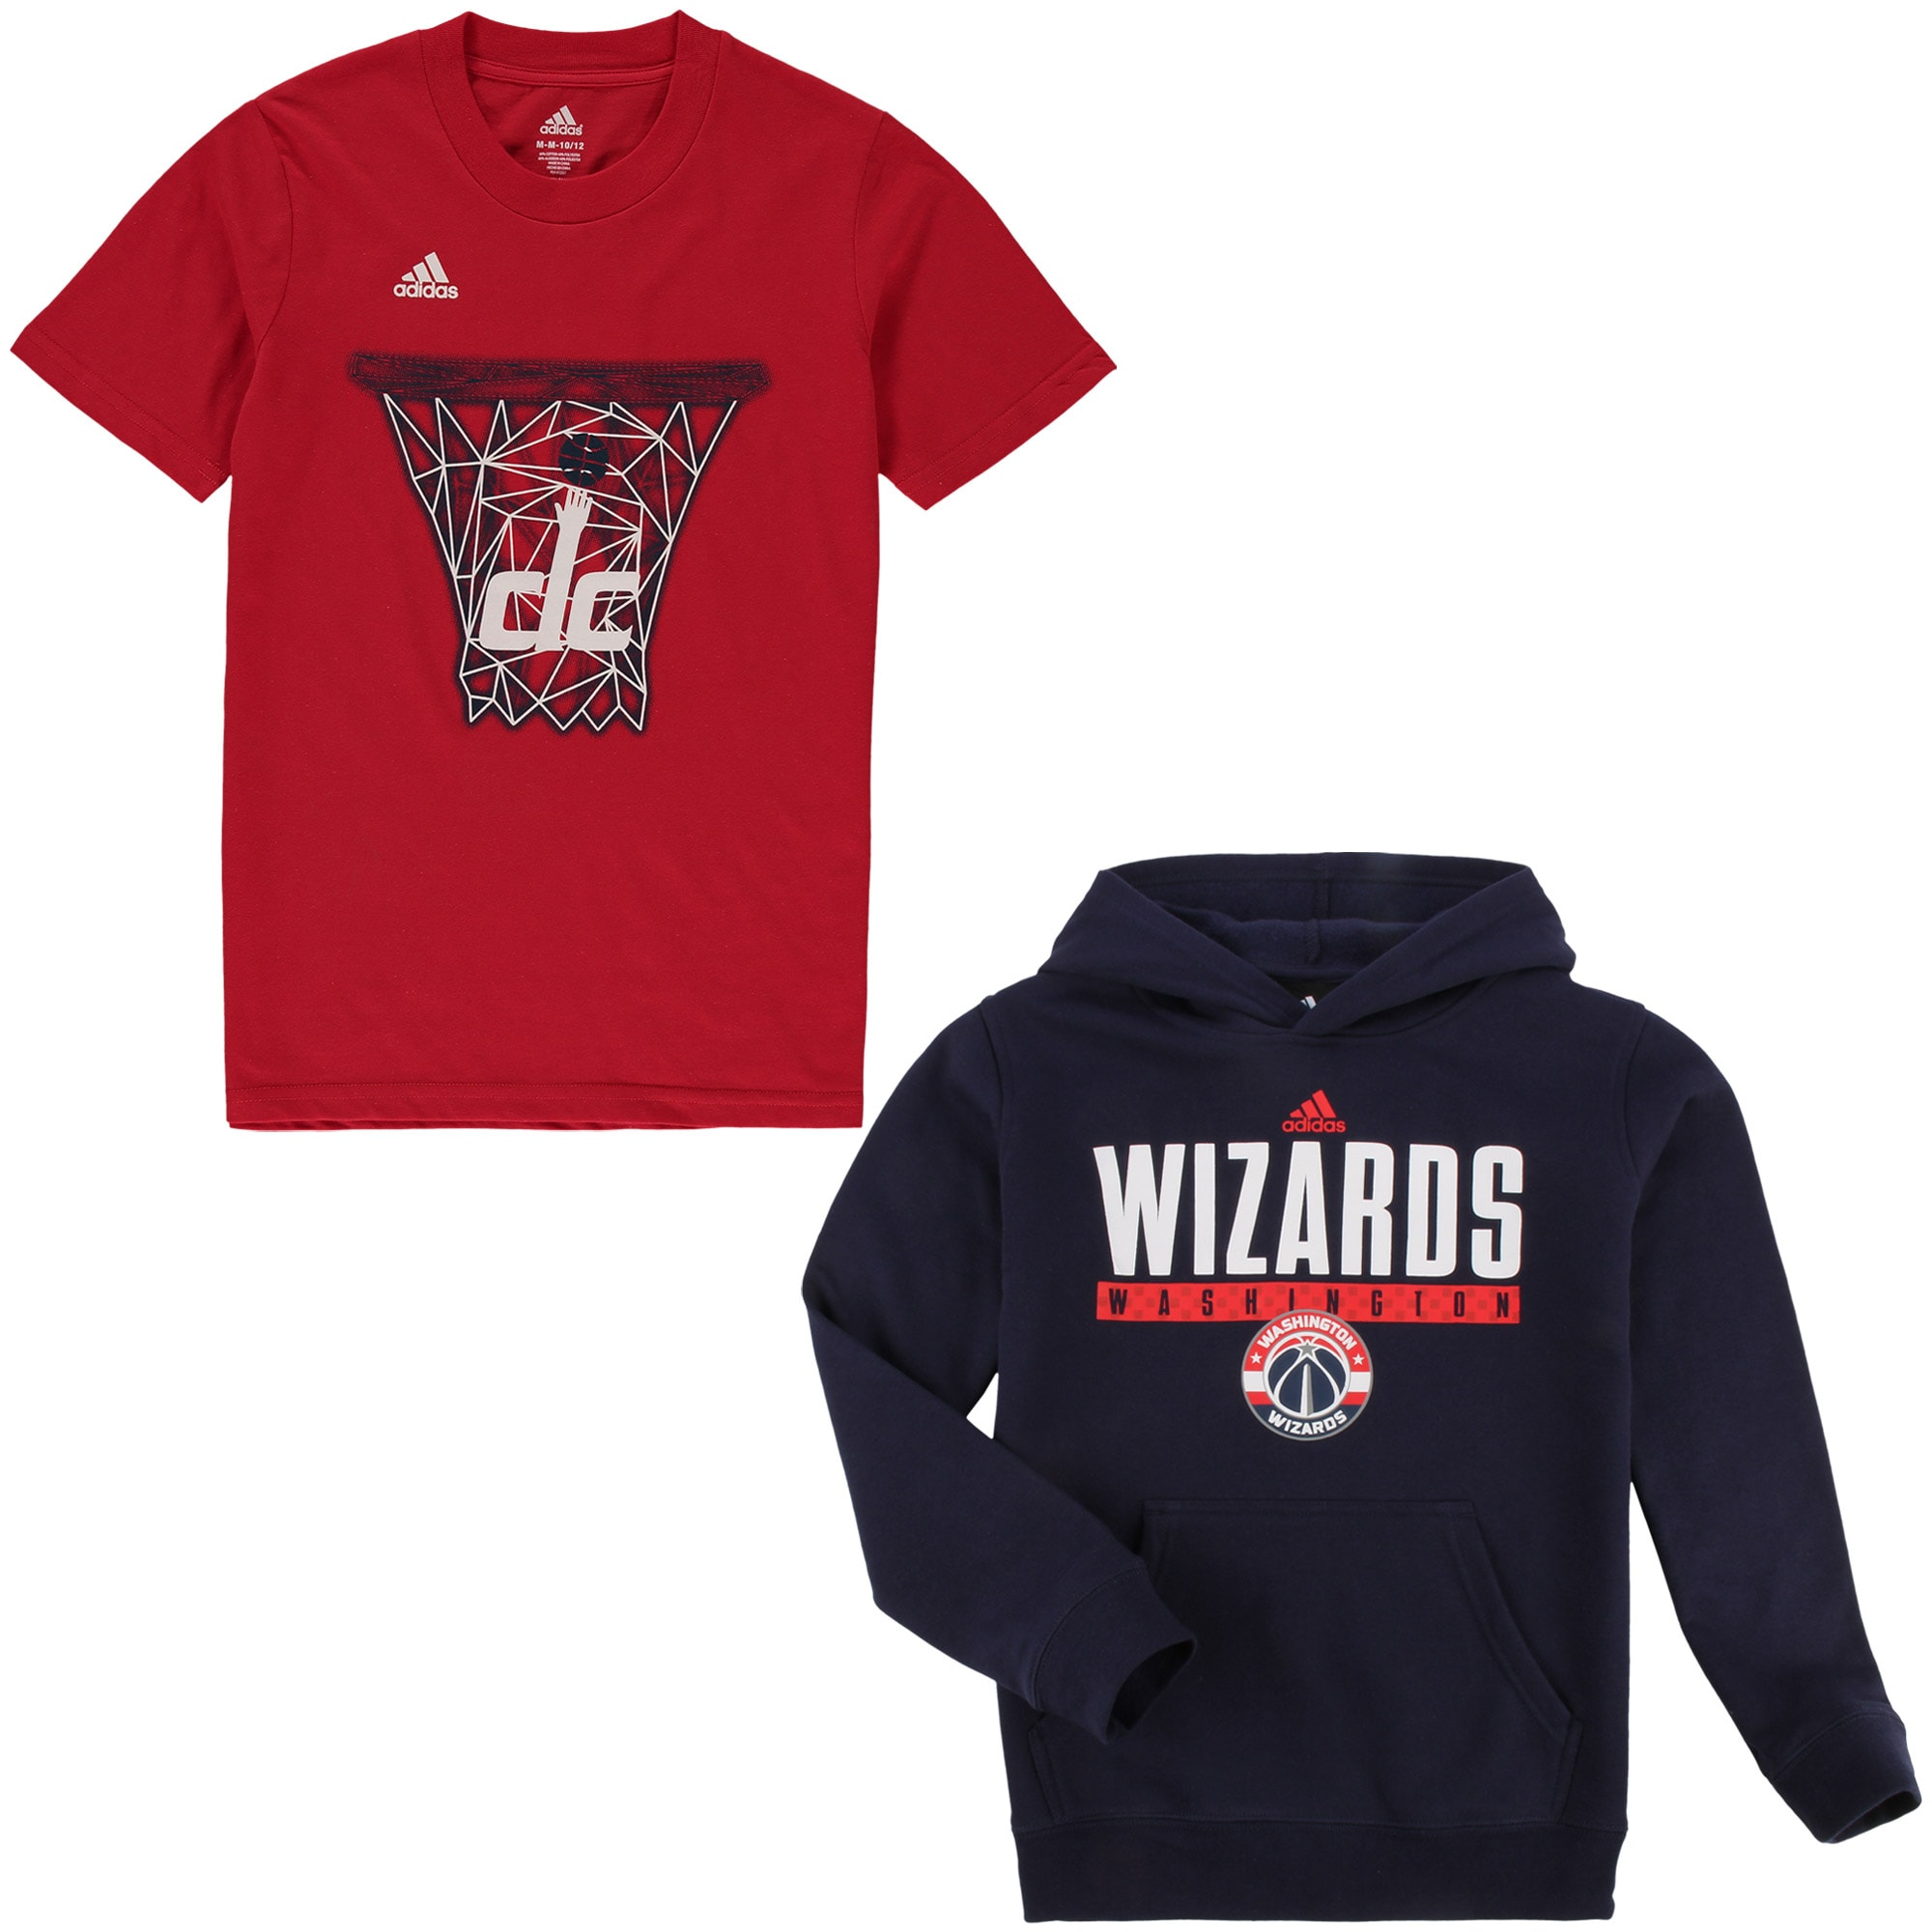 Washington Wizards adidas Youth Hoodie and T-Shirt Combo - Red/Navy